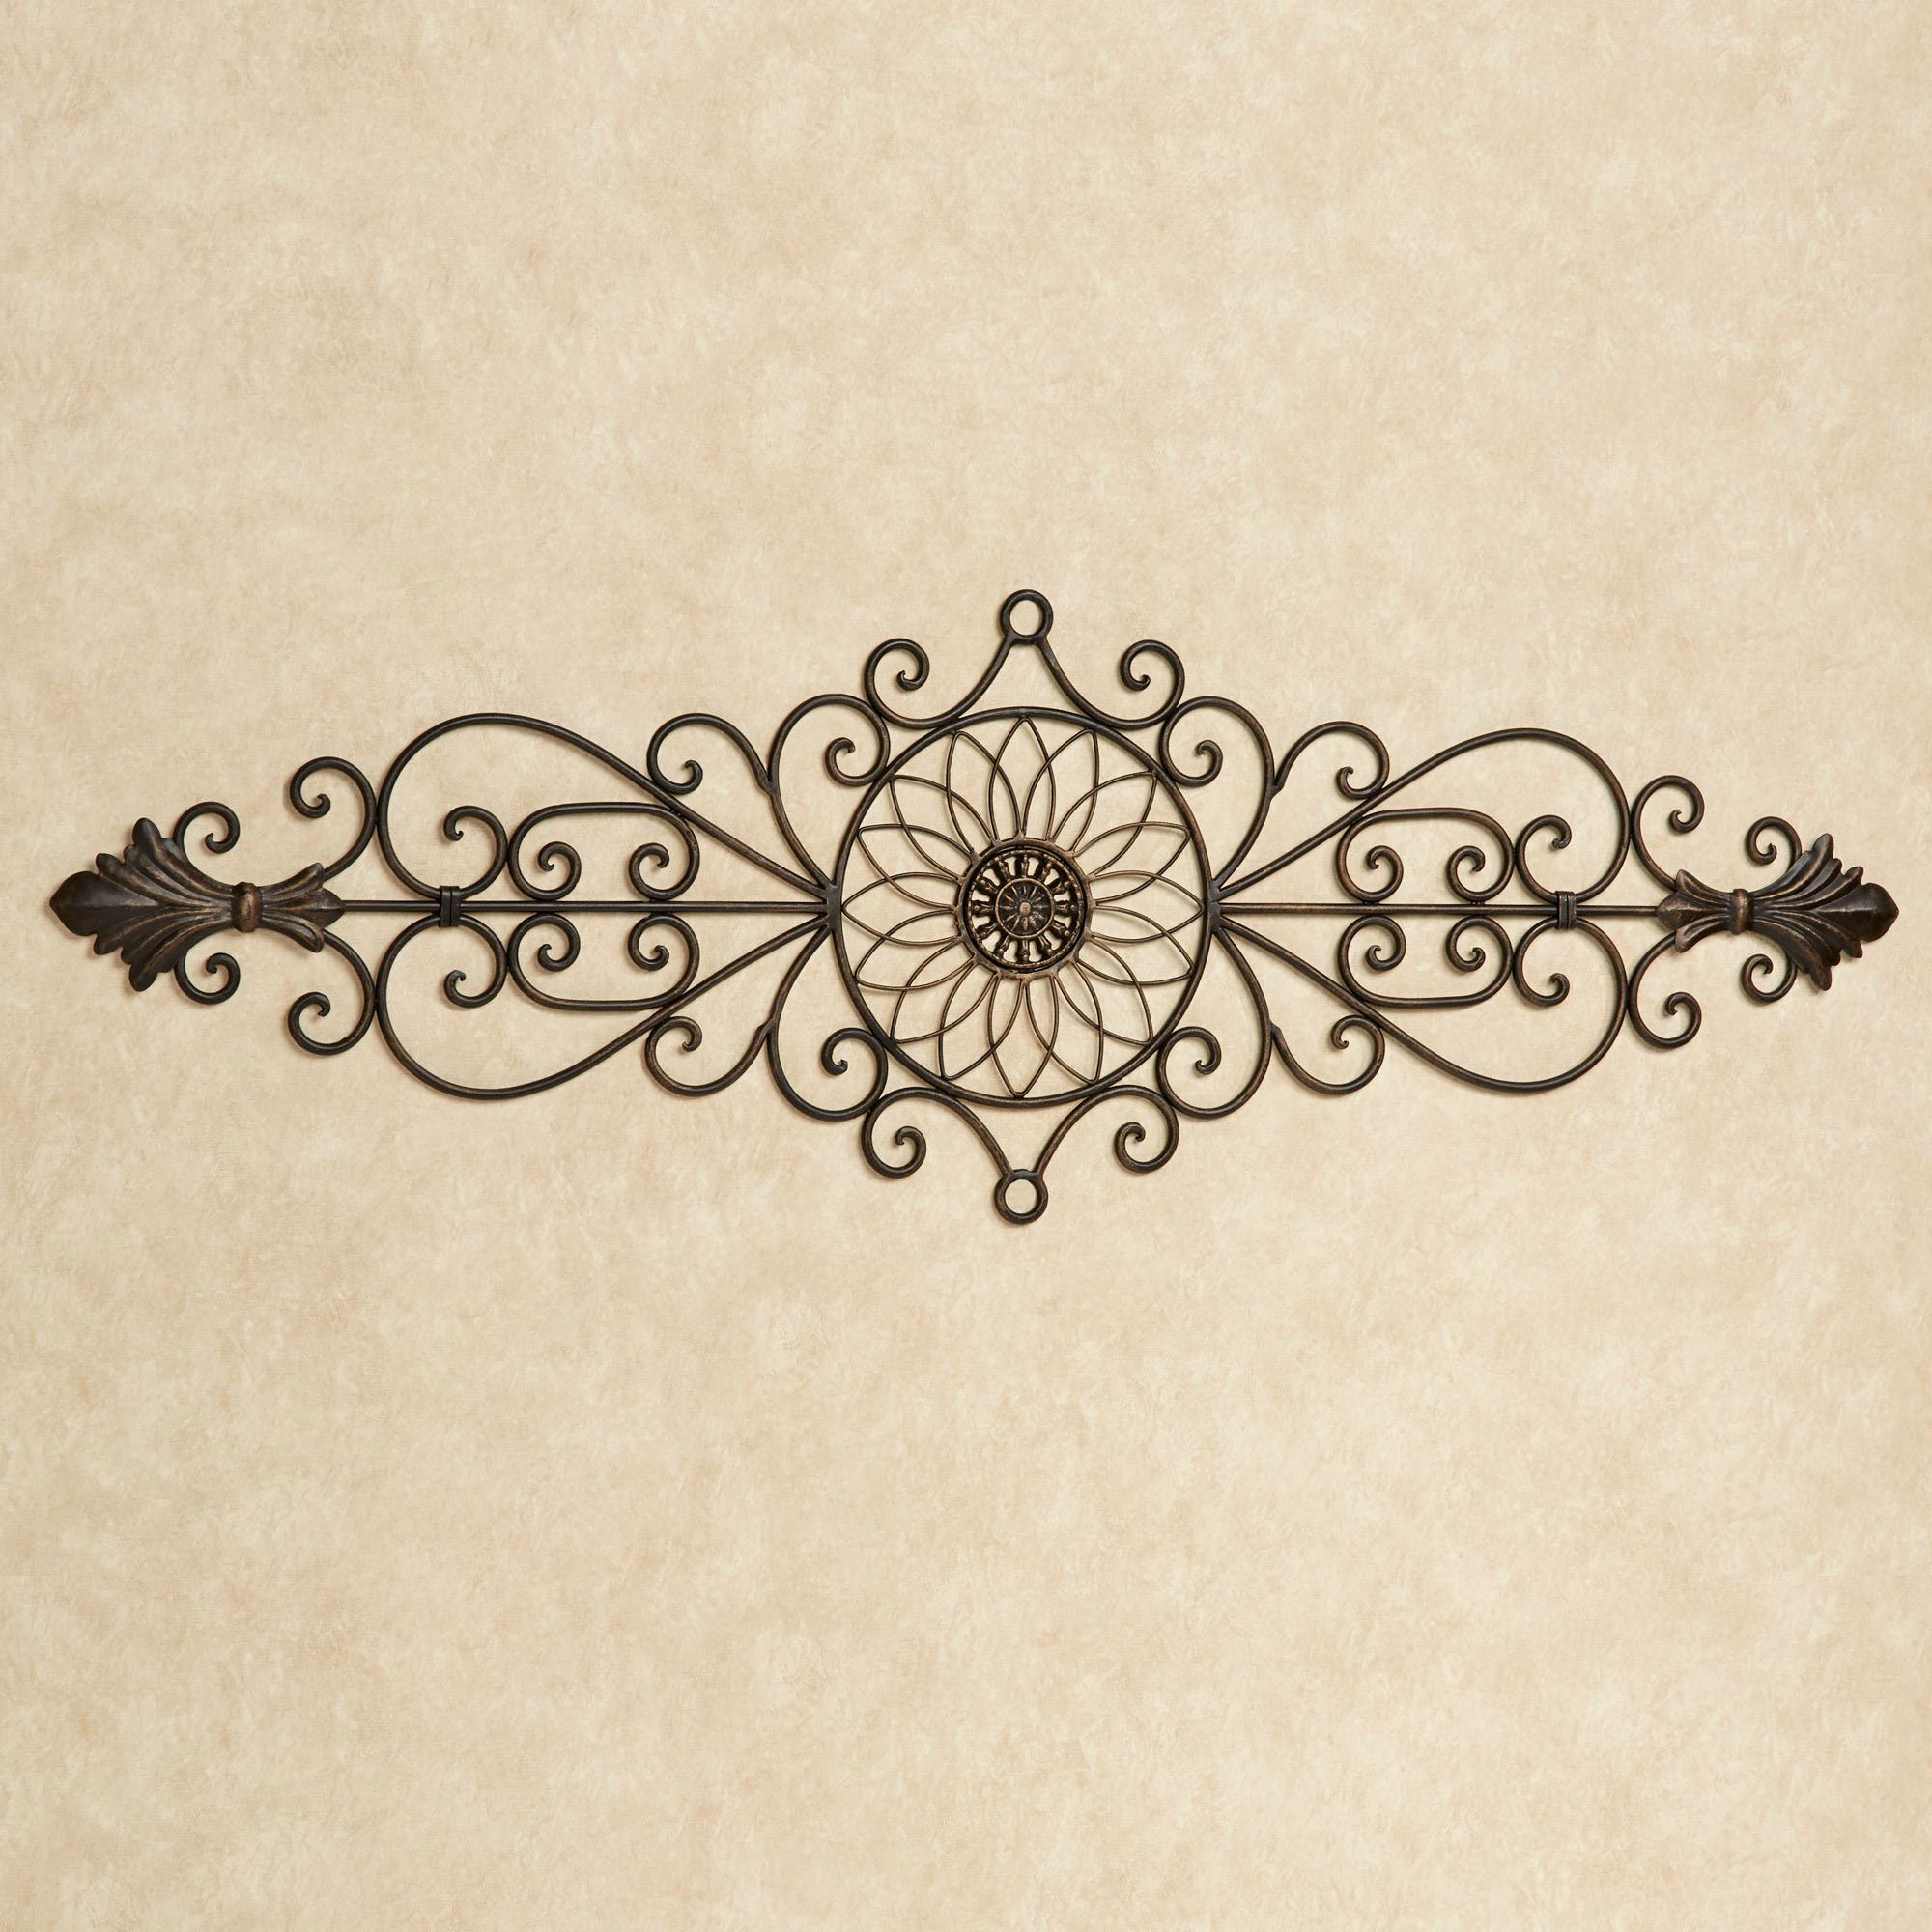 Wrought Iron Wall Scrolls Wall Grilles  Touch Of Class